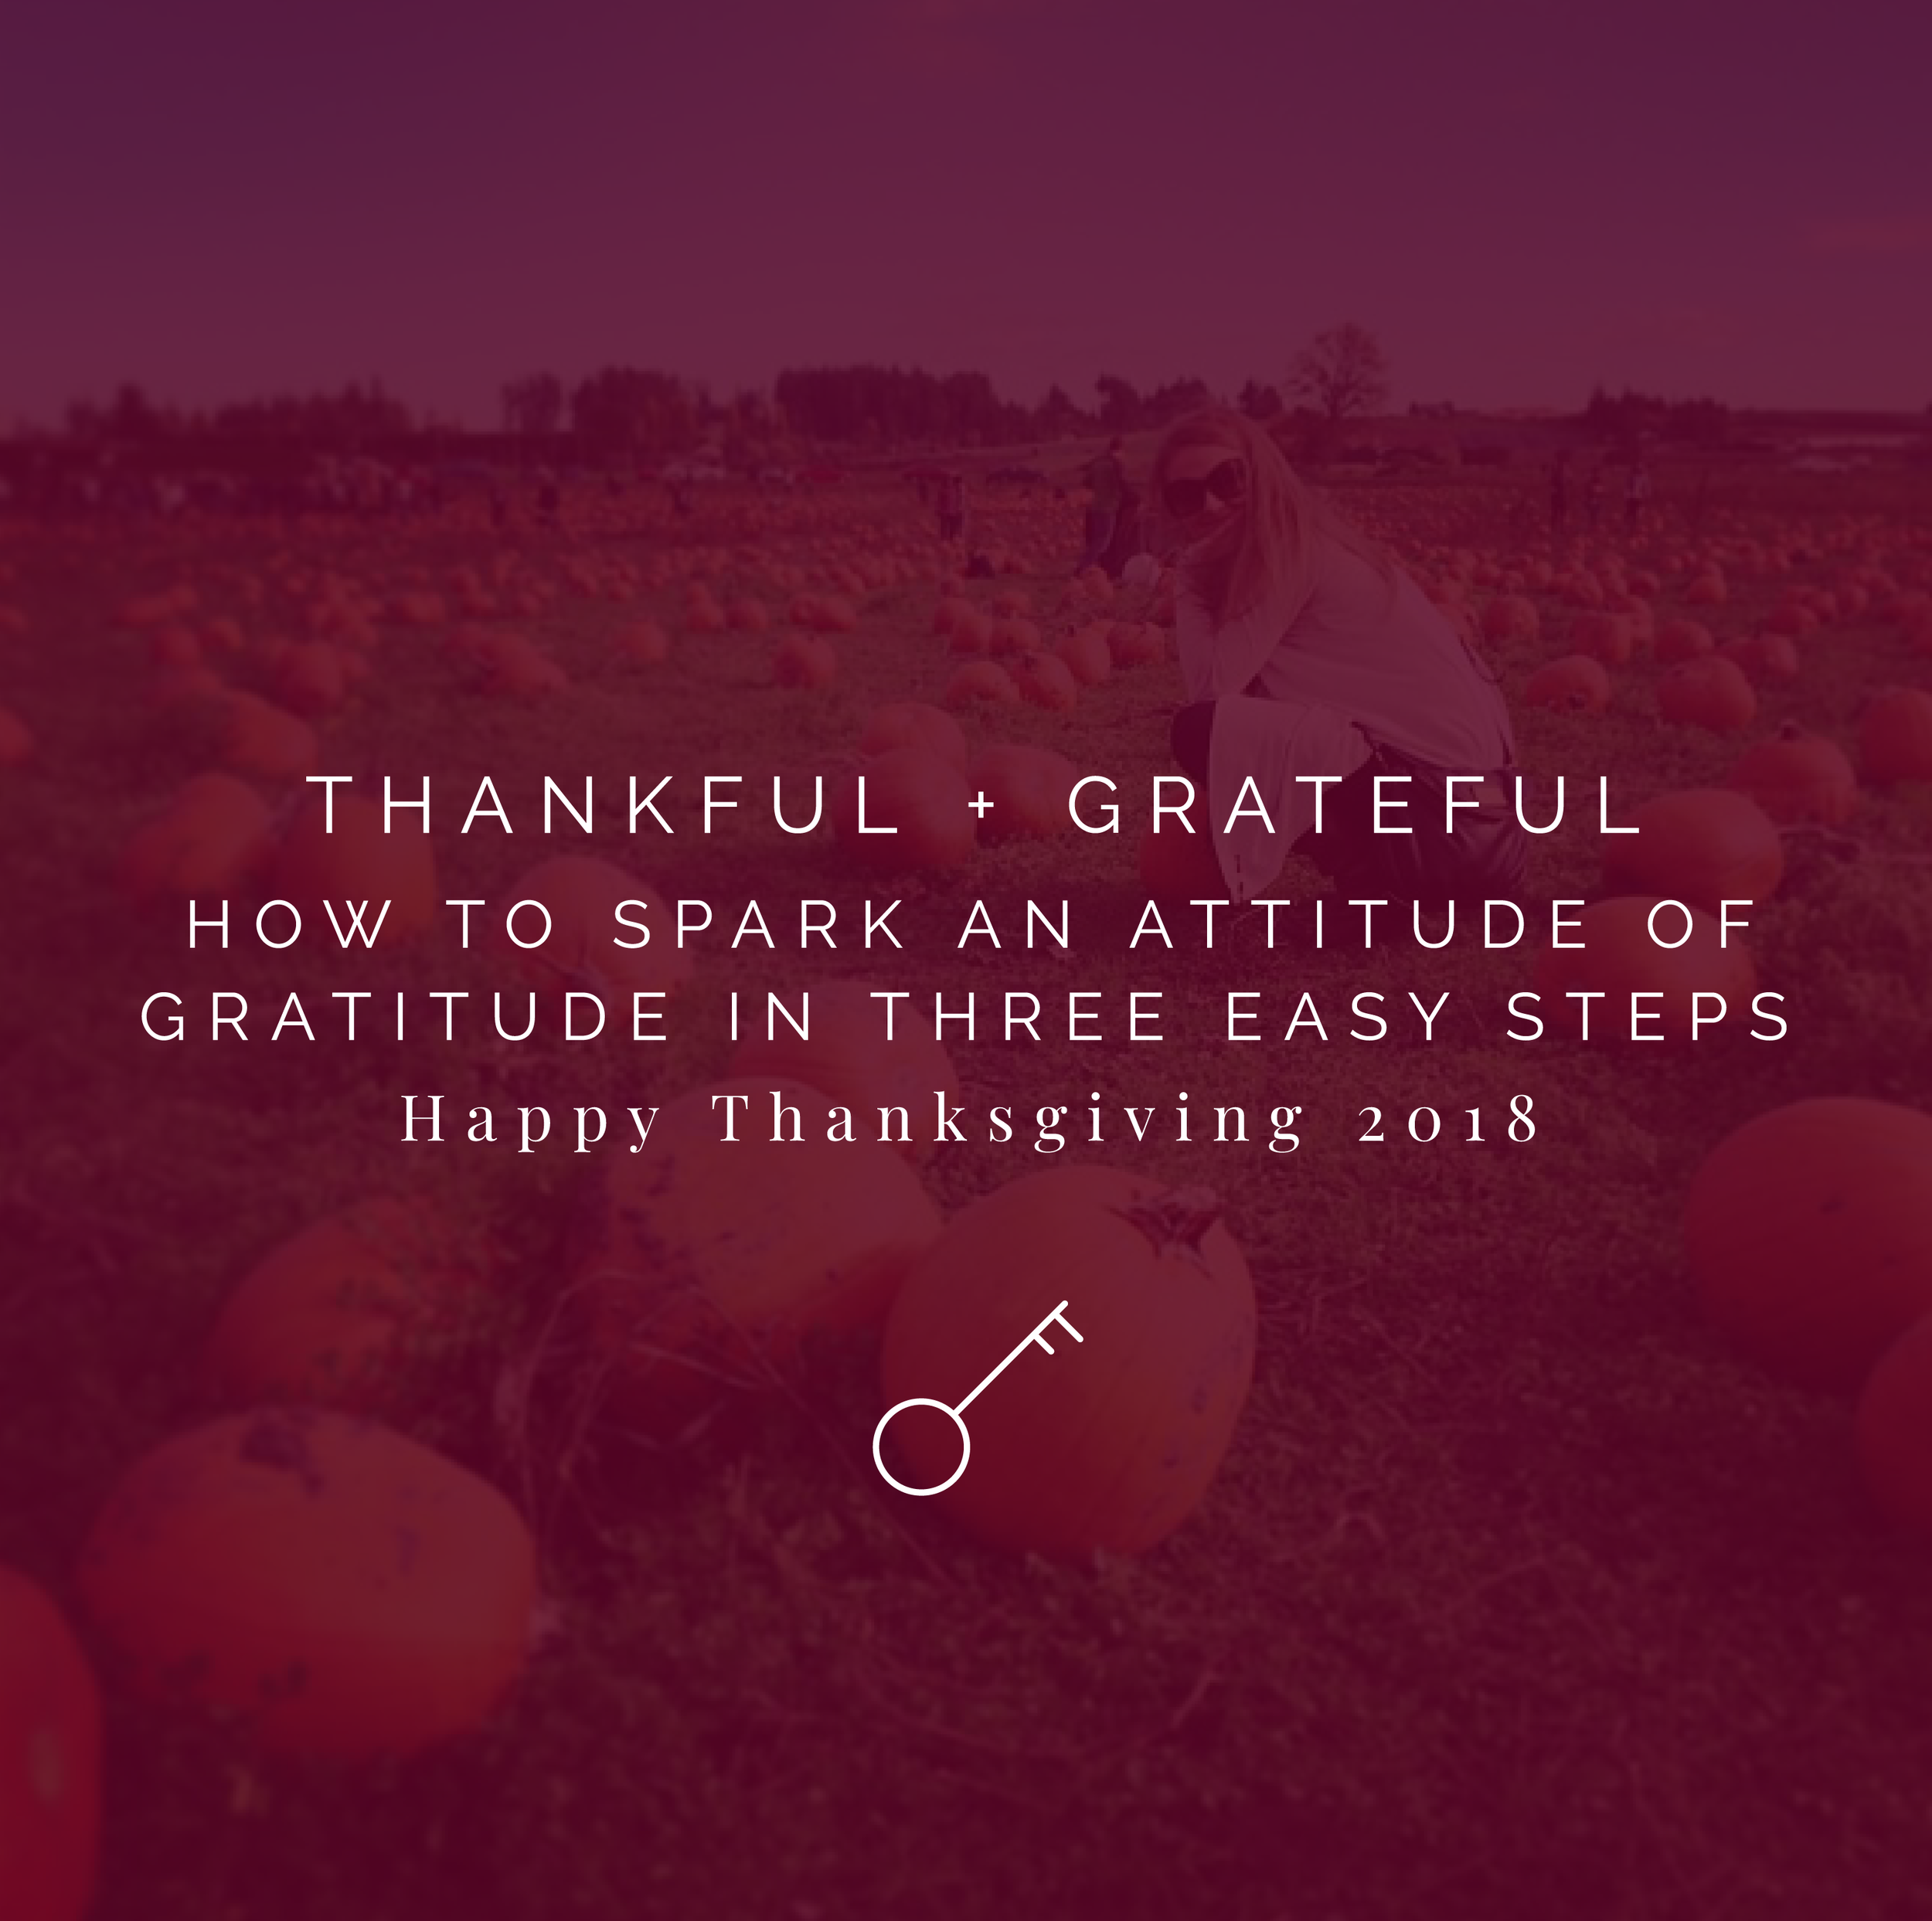 How to spark gratitude in three easy steps